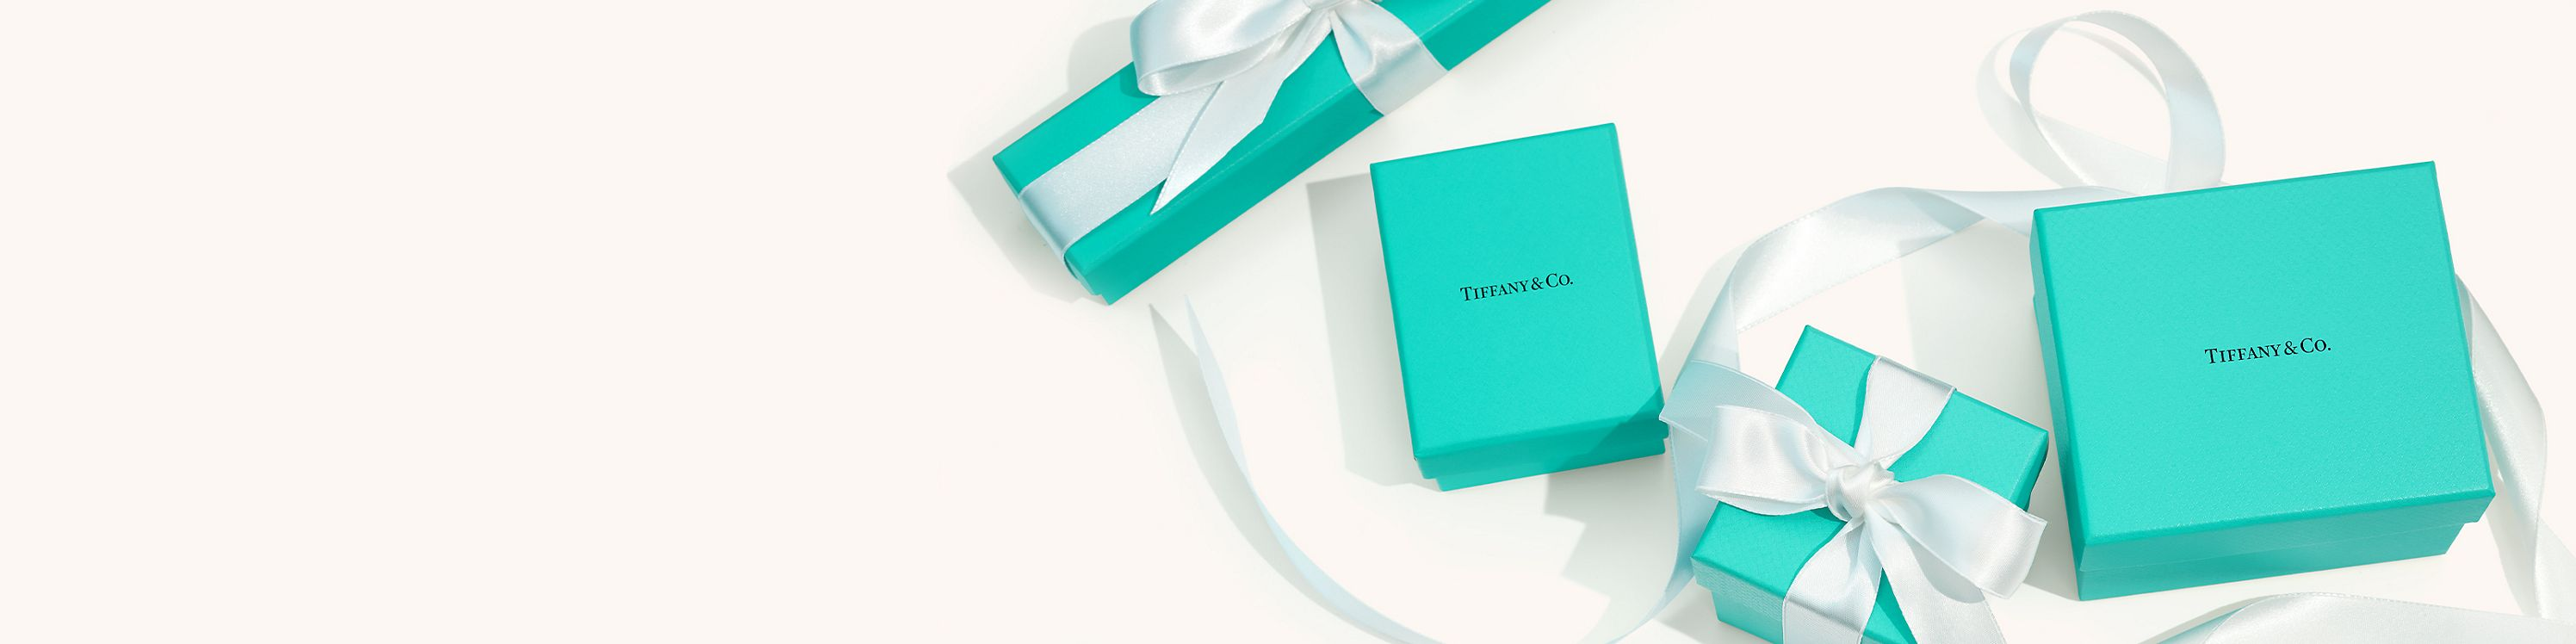 Tiffany & Co. Gifts Under $500